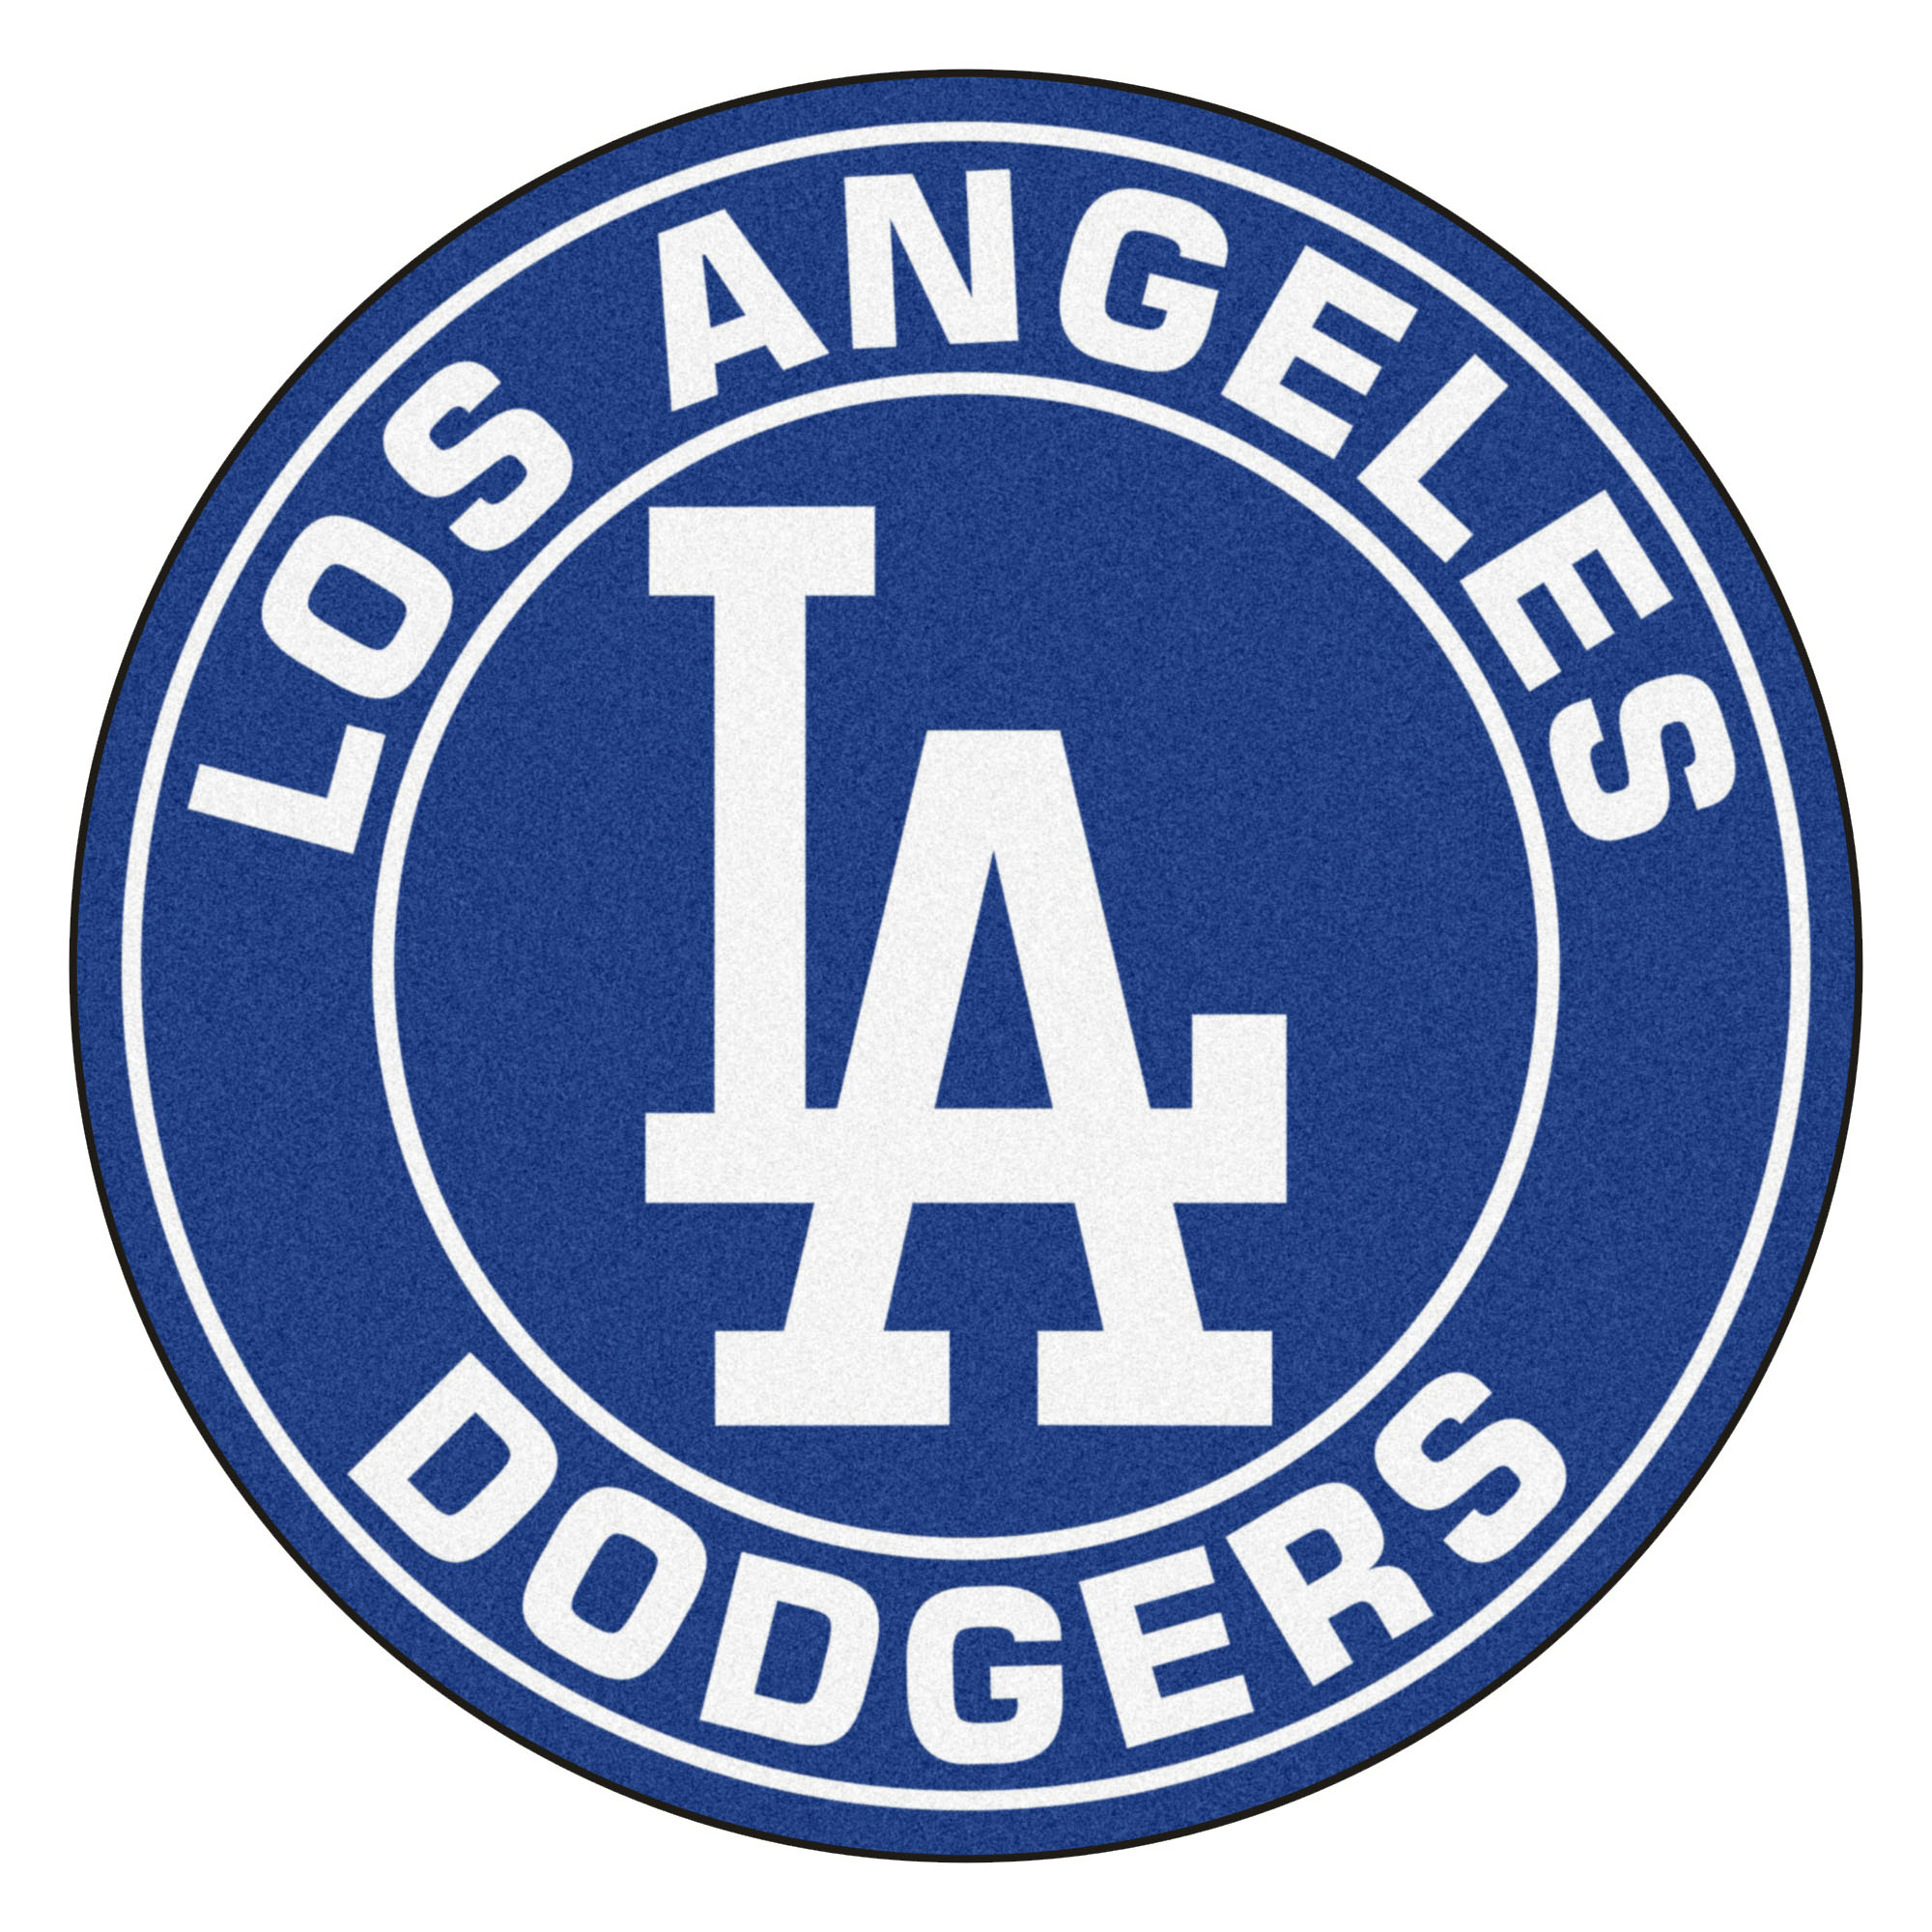 Presale Codes For Opening Day 2018 Los Angeles Dodgers Presale Codes